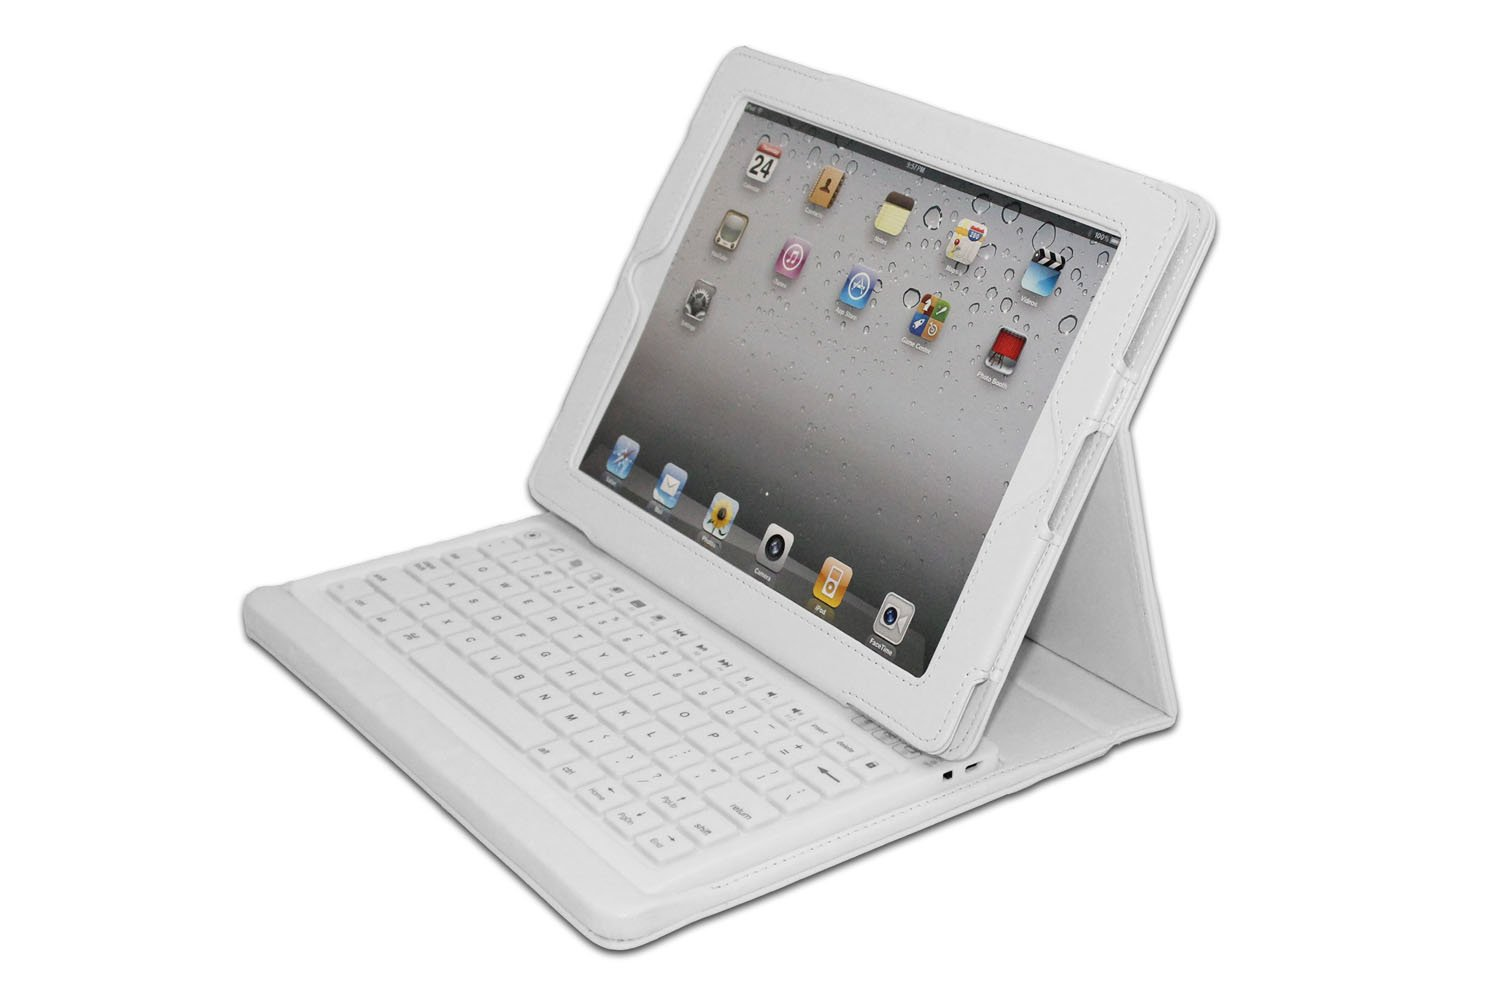 Adesso Compagno 2W, Bluetooth Keyboard with Carrying Case for iPad 2 and iPad (3rd and 4th Generation) - White WKB-2000CW